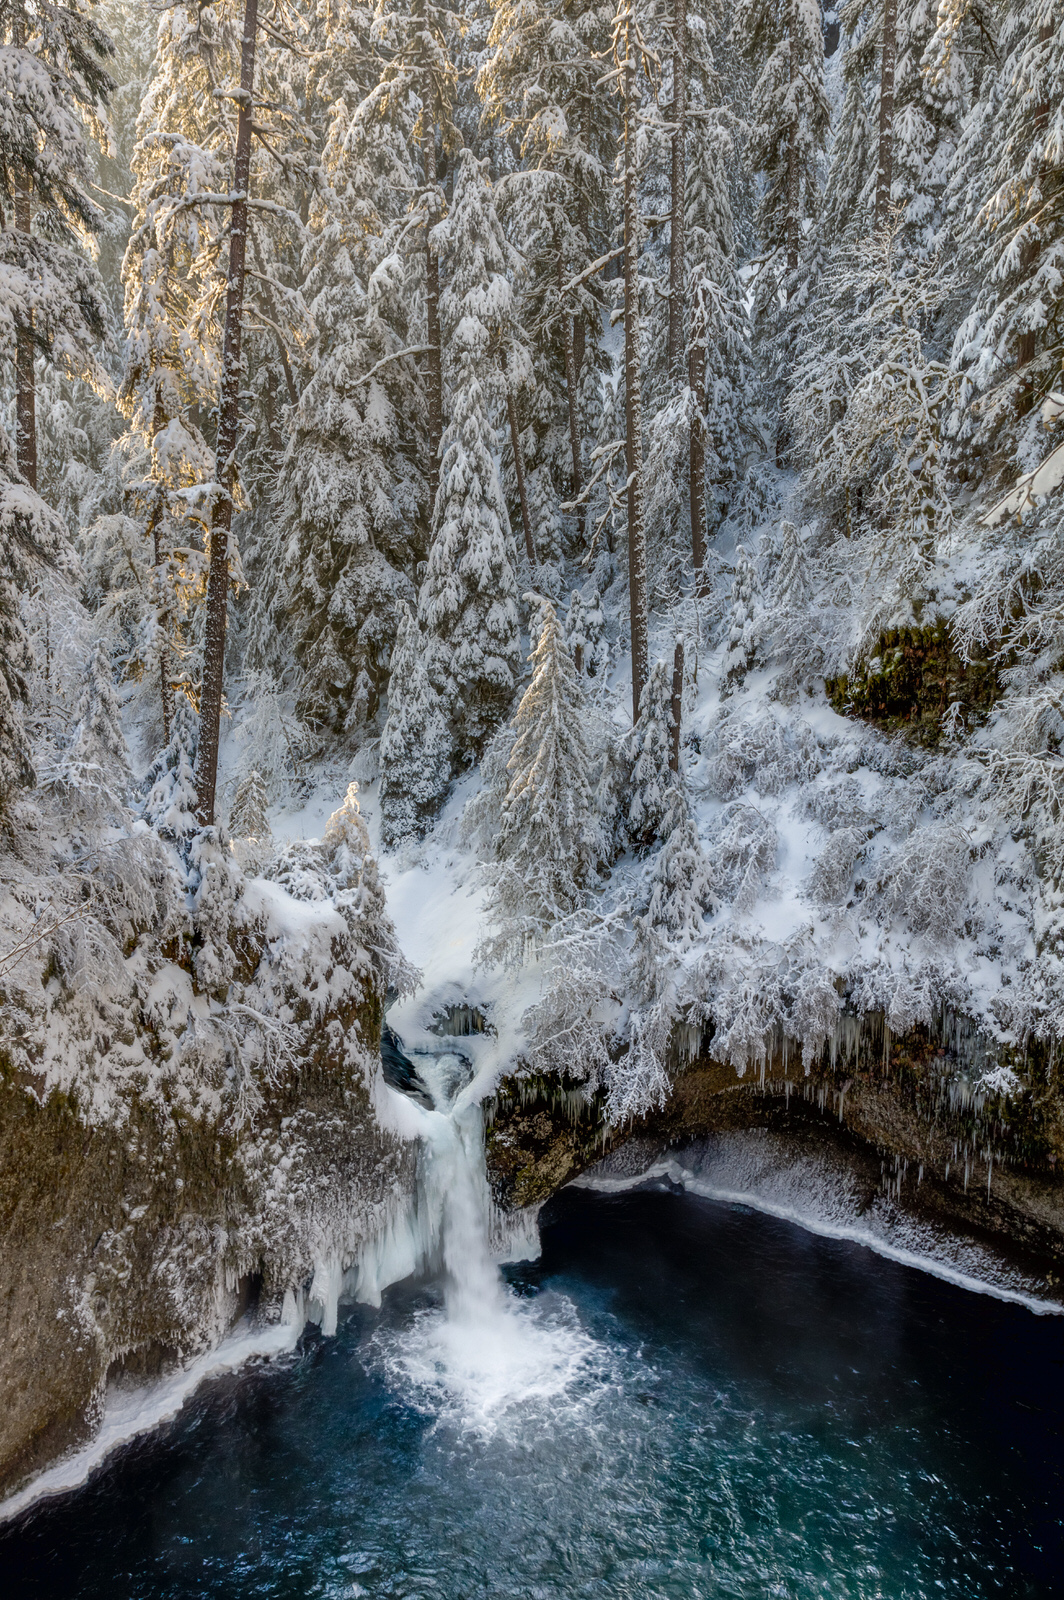 First light at Punchbowl Falls in winter